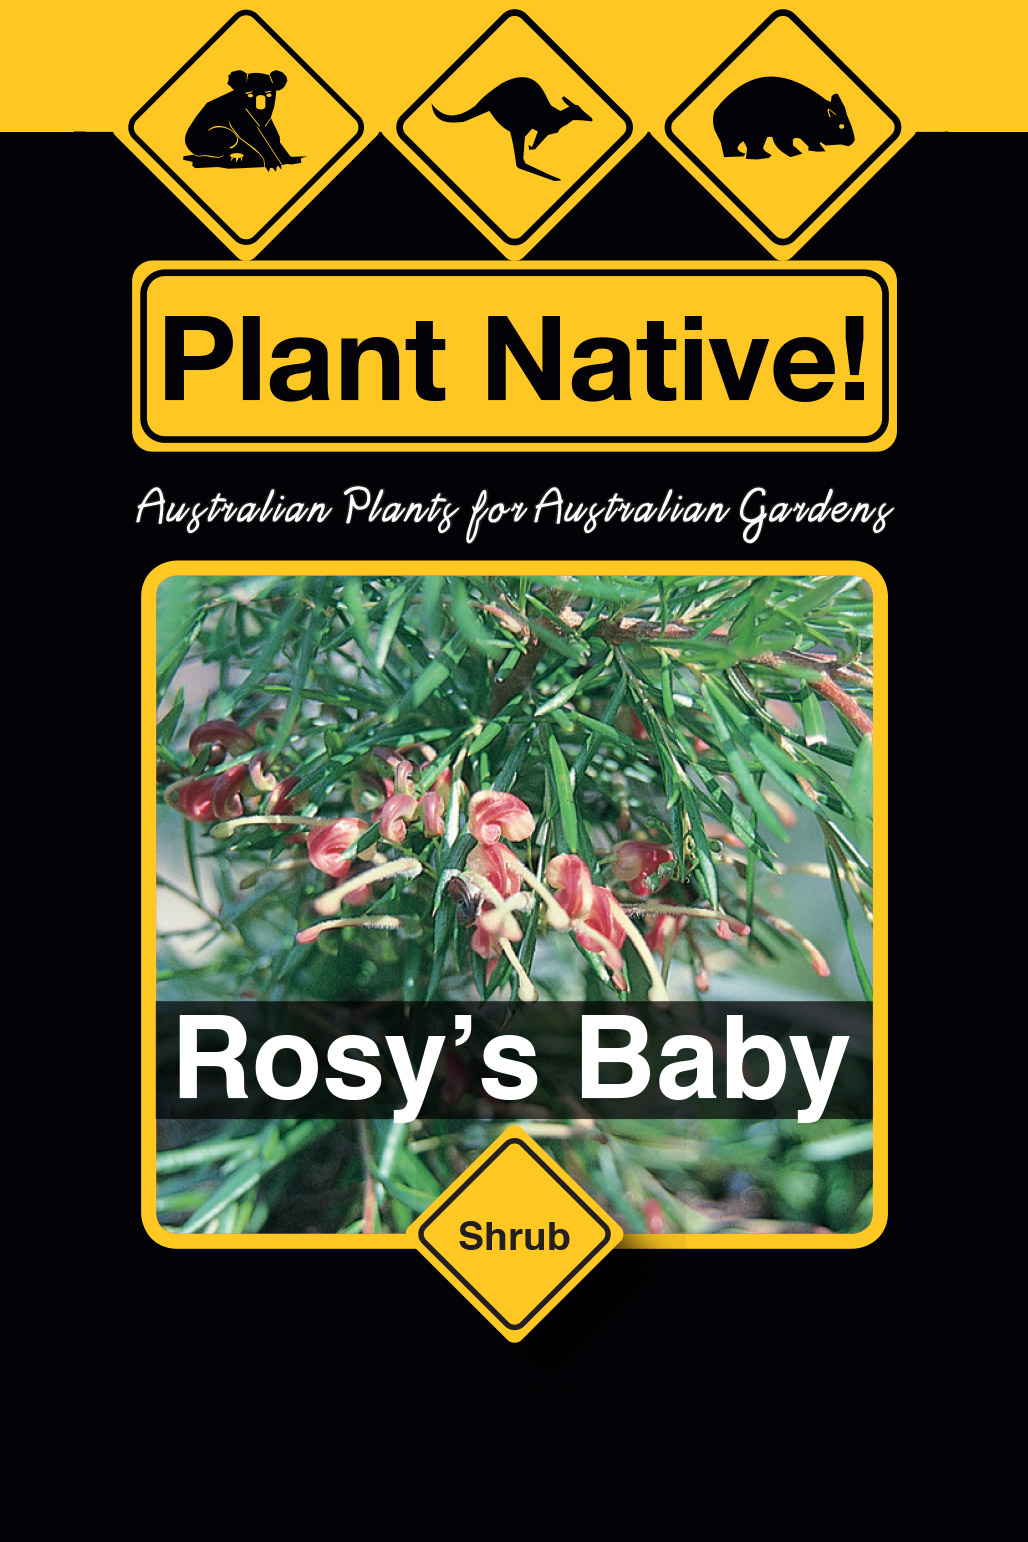 Rosy's Baby - Plant Native!